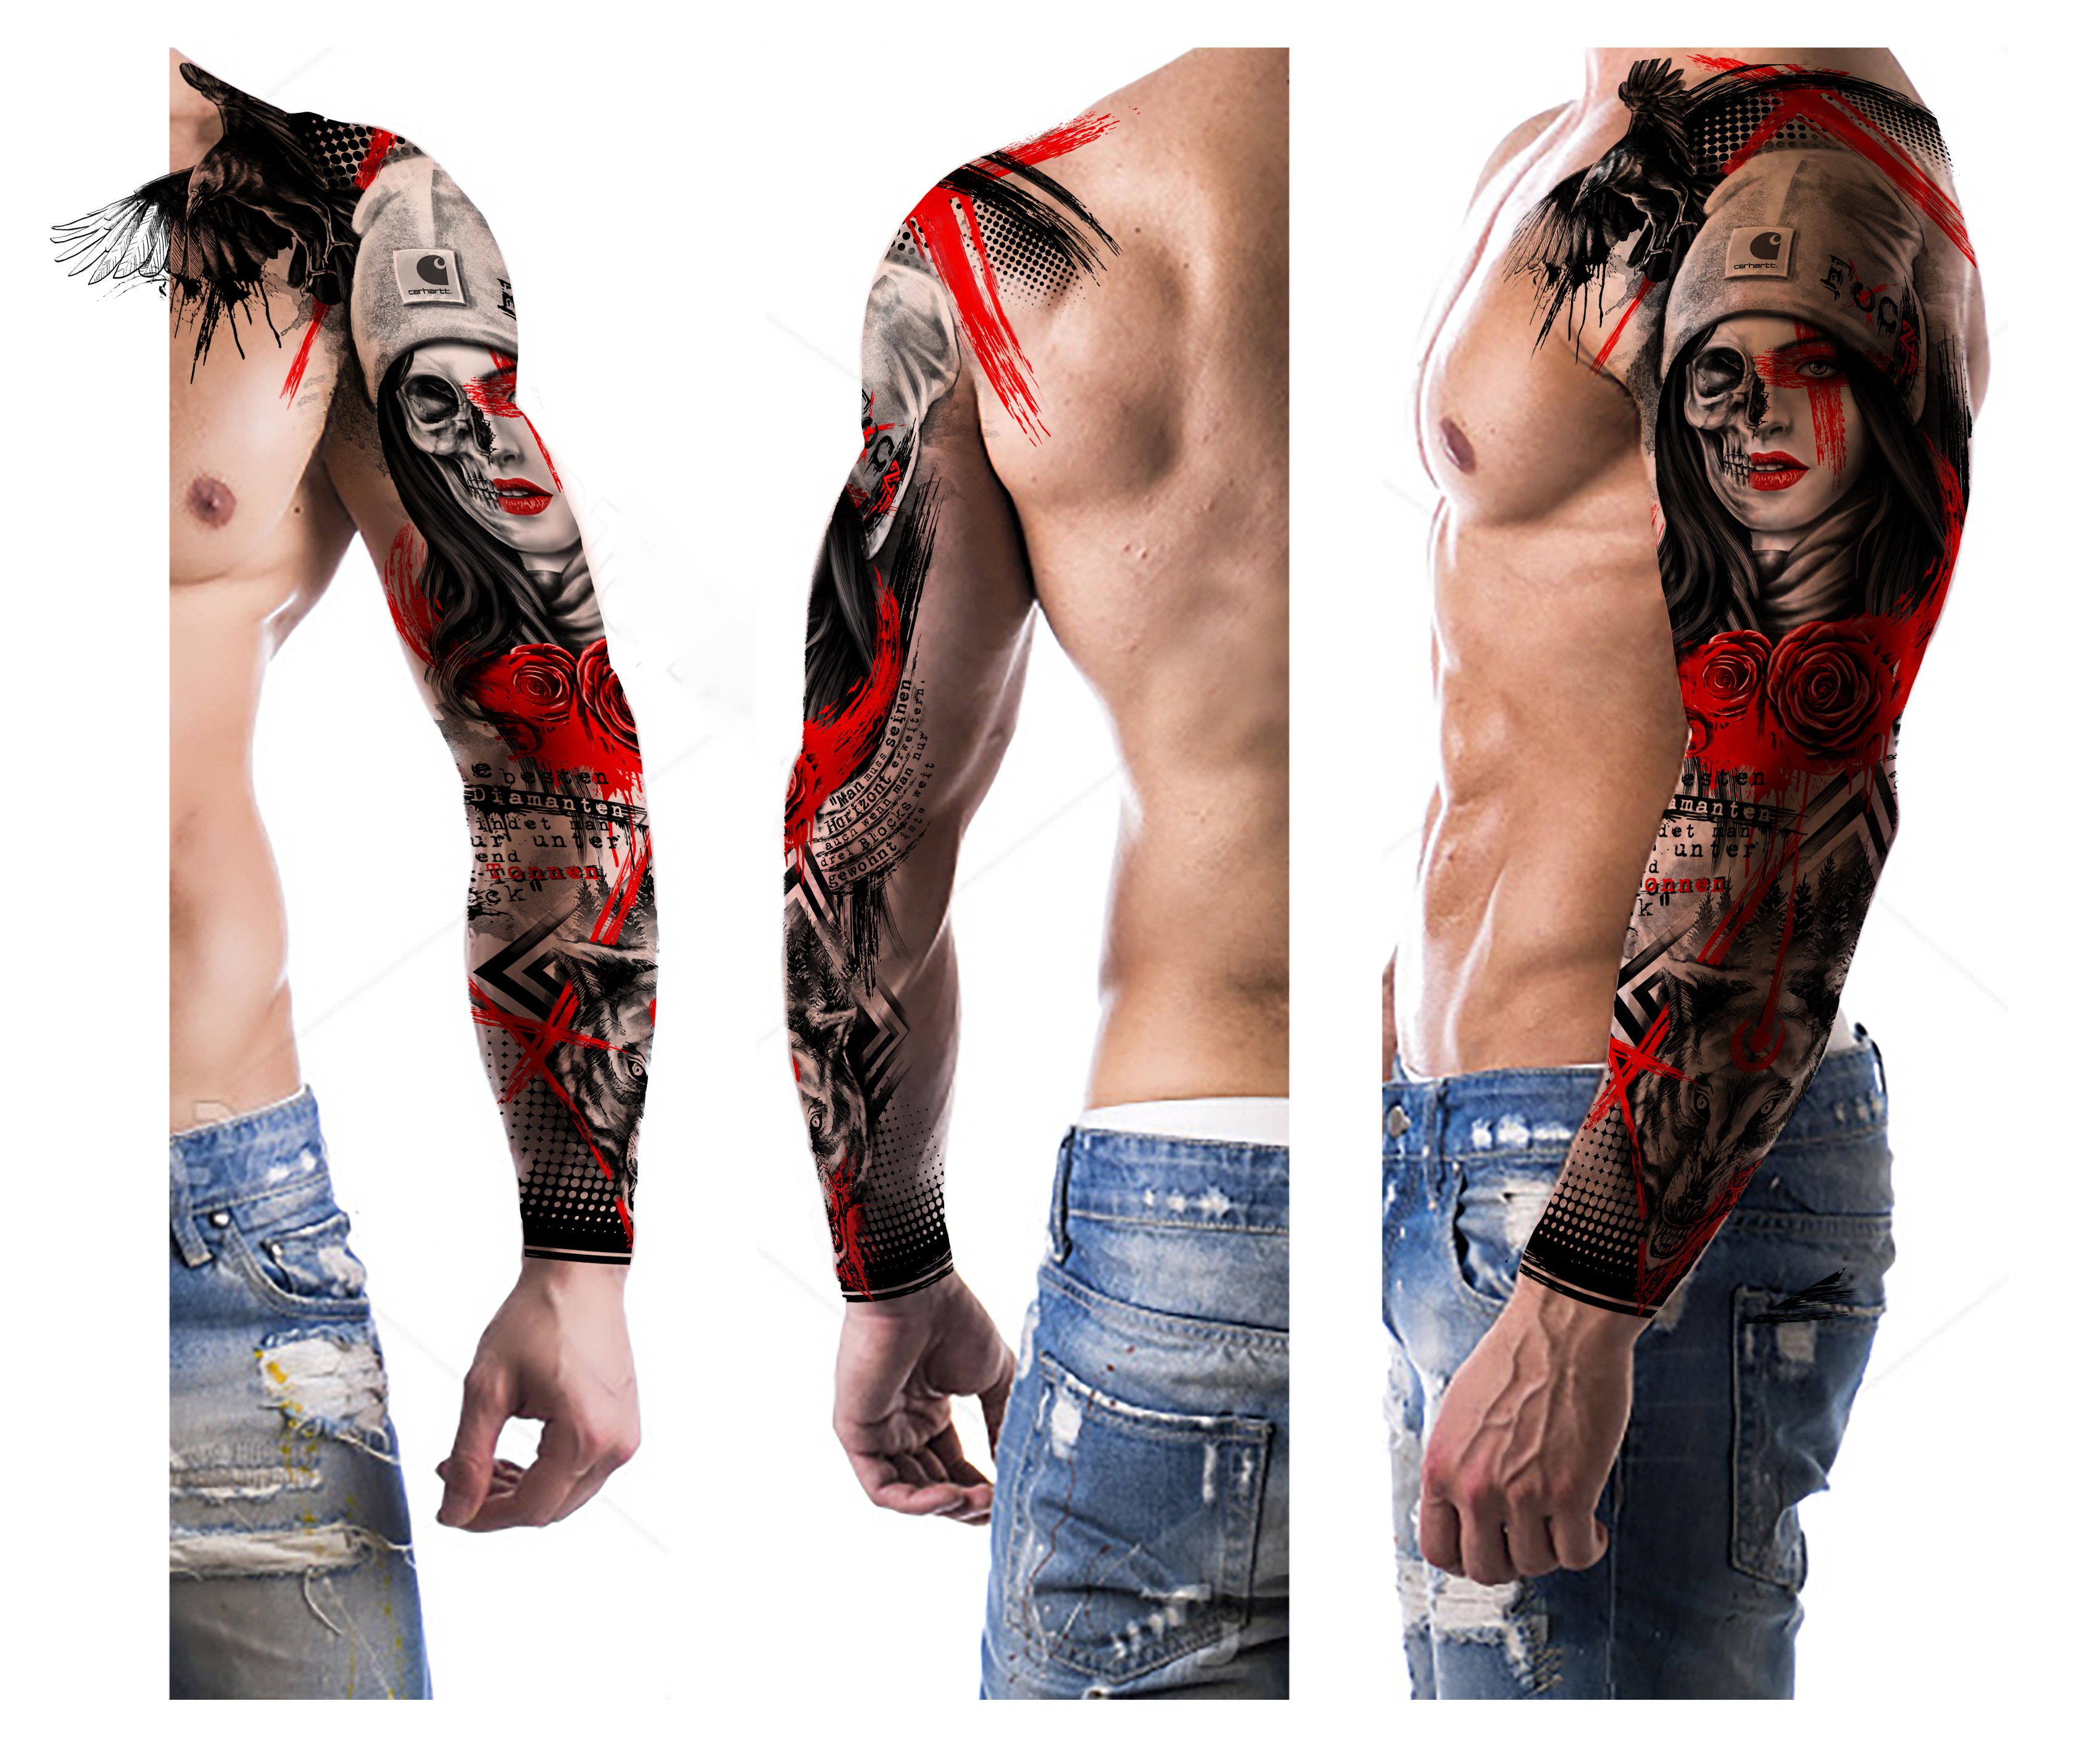 Trash Polka Tattoo, be creativ and crazy as you can!